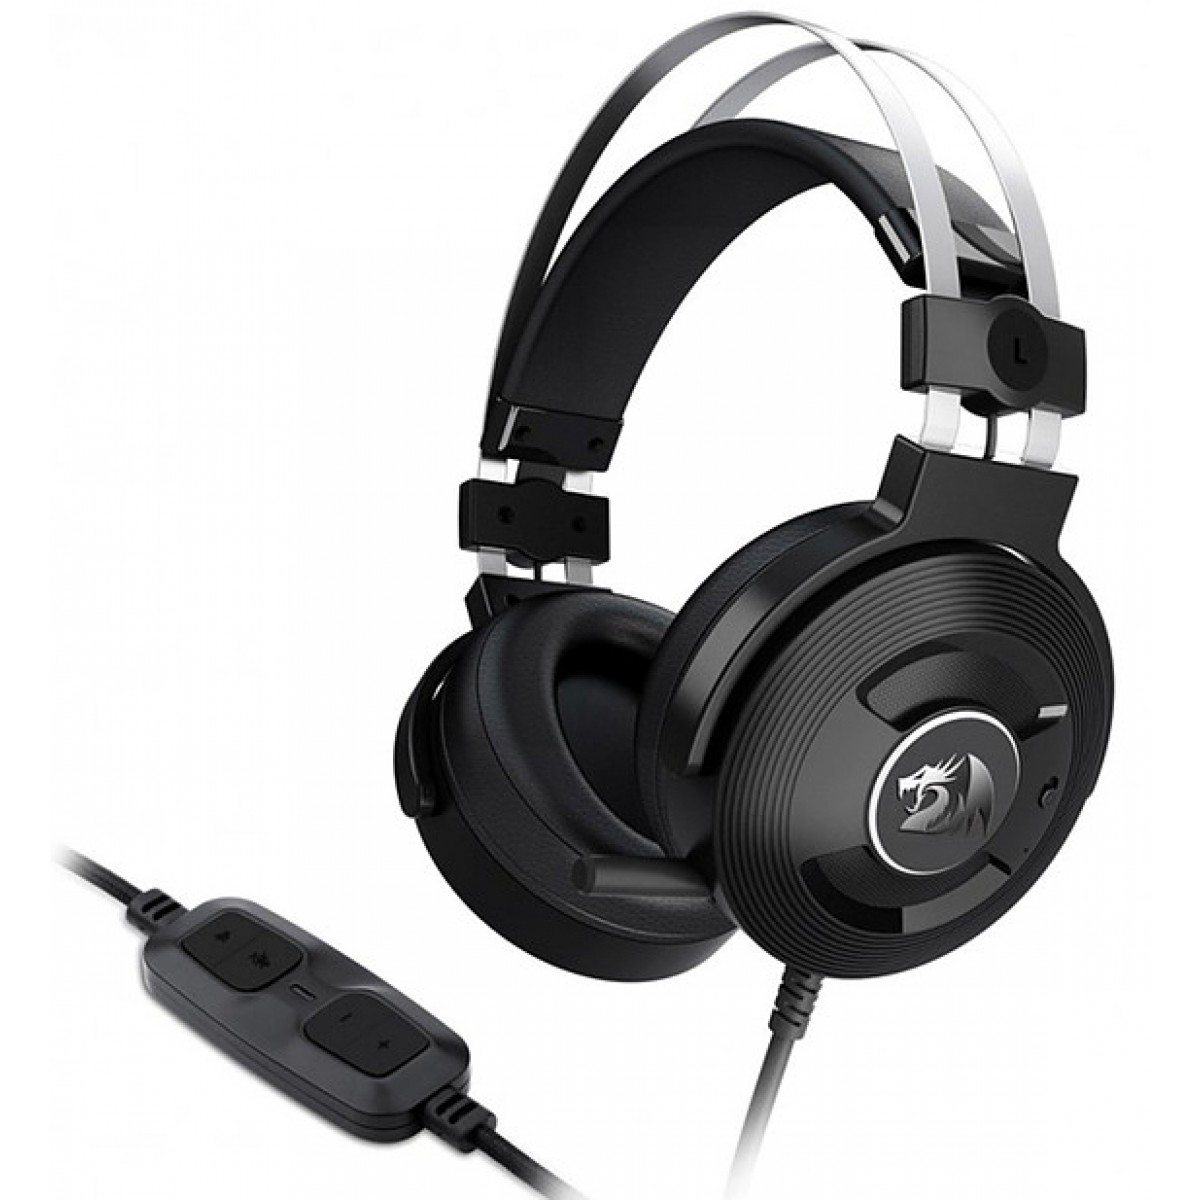 Headset Redragon Triton H991, Surround 7.1